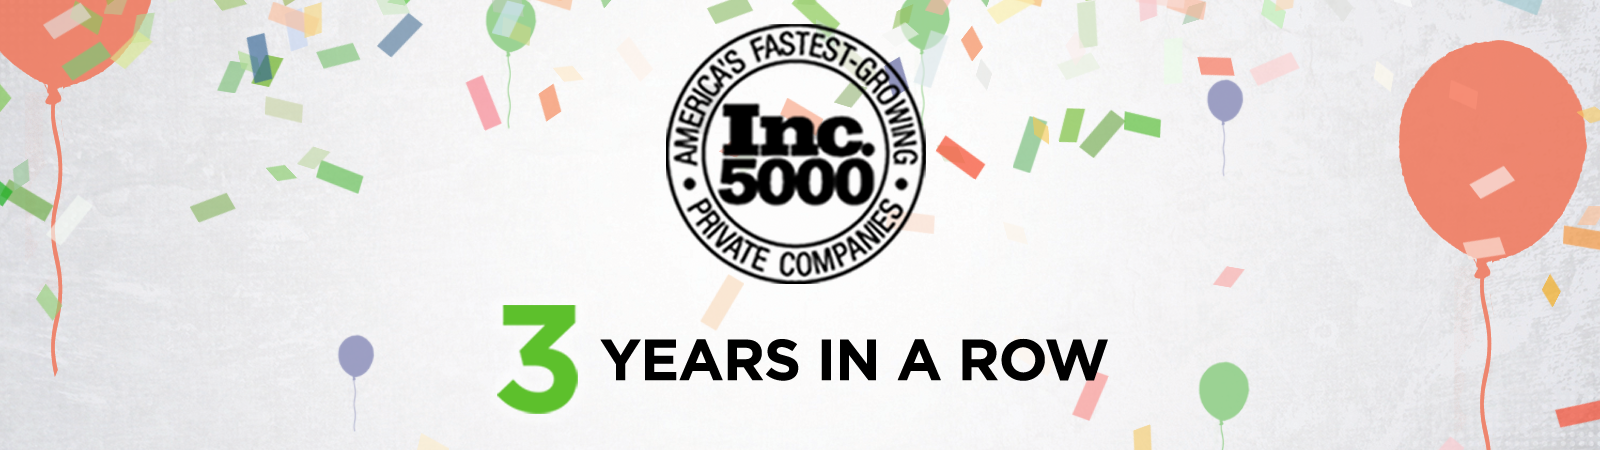 We Won the Inc. 5000 Award 3 Years In A Row